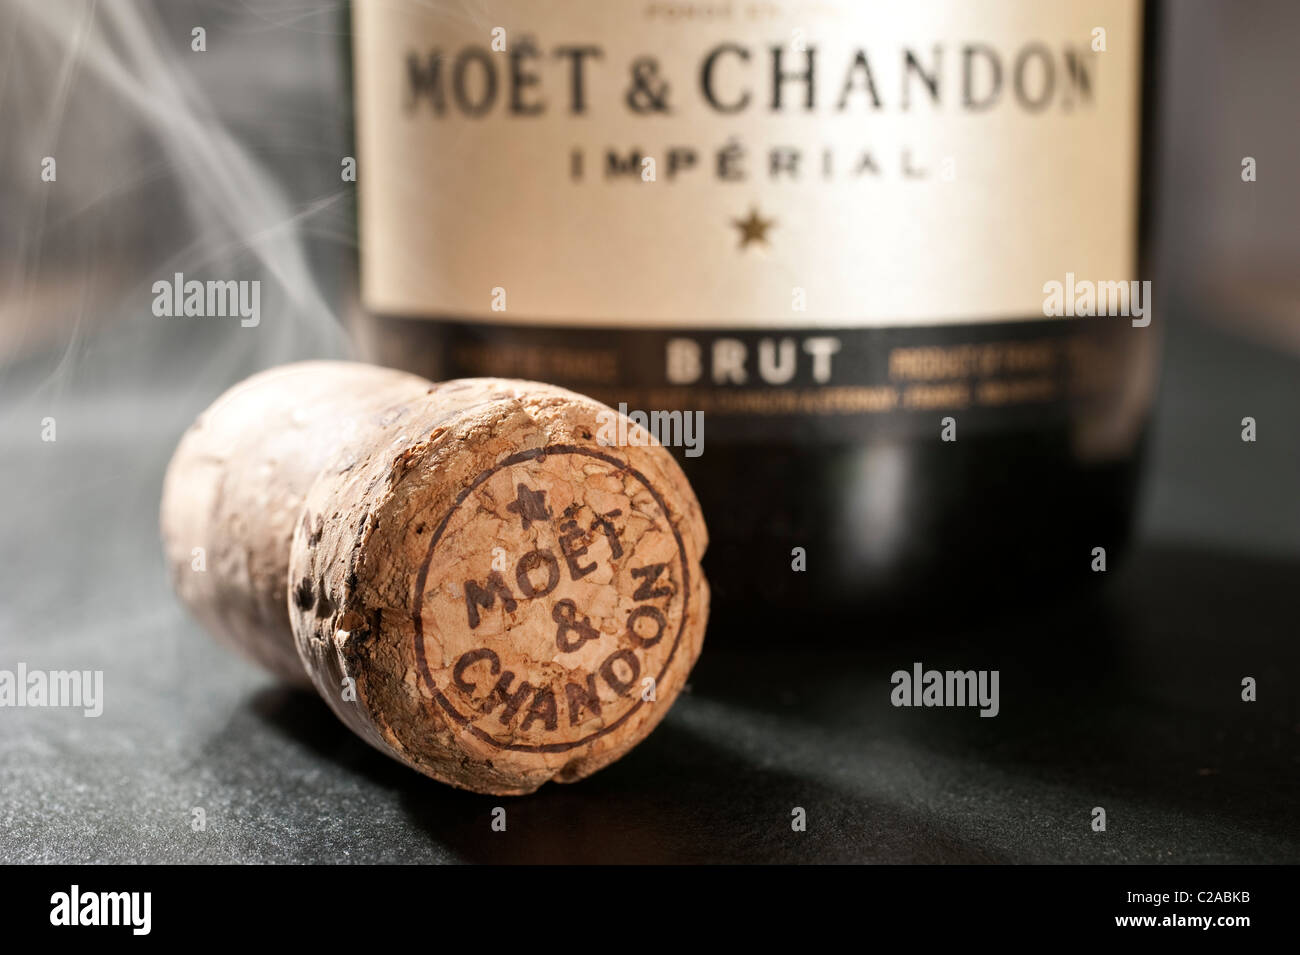 The cork and bottle of Moet and Chandon Champagne, wreathed in cigar or cigarette smoke - Stock Image